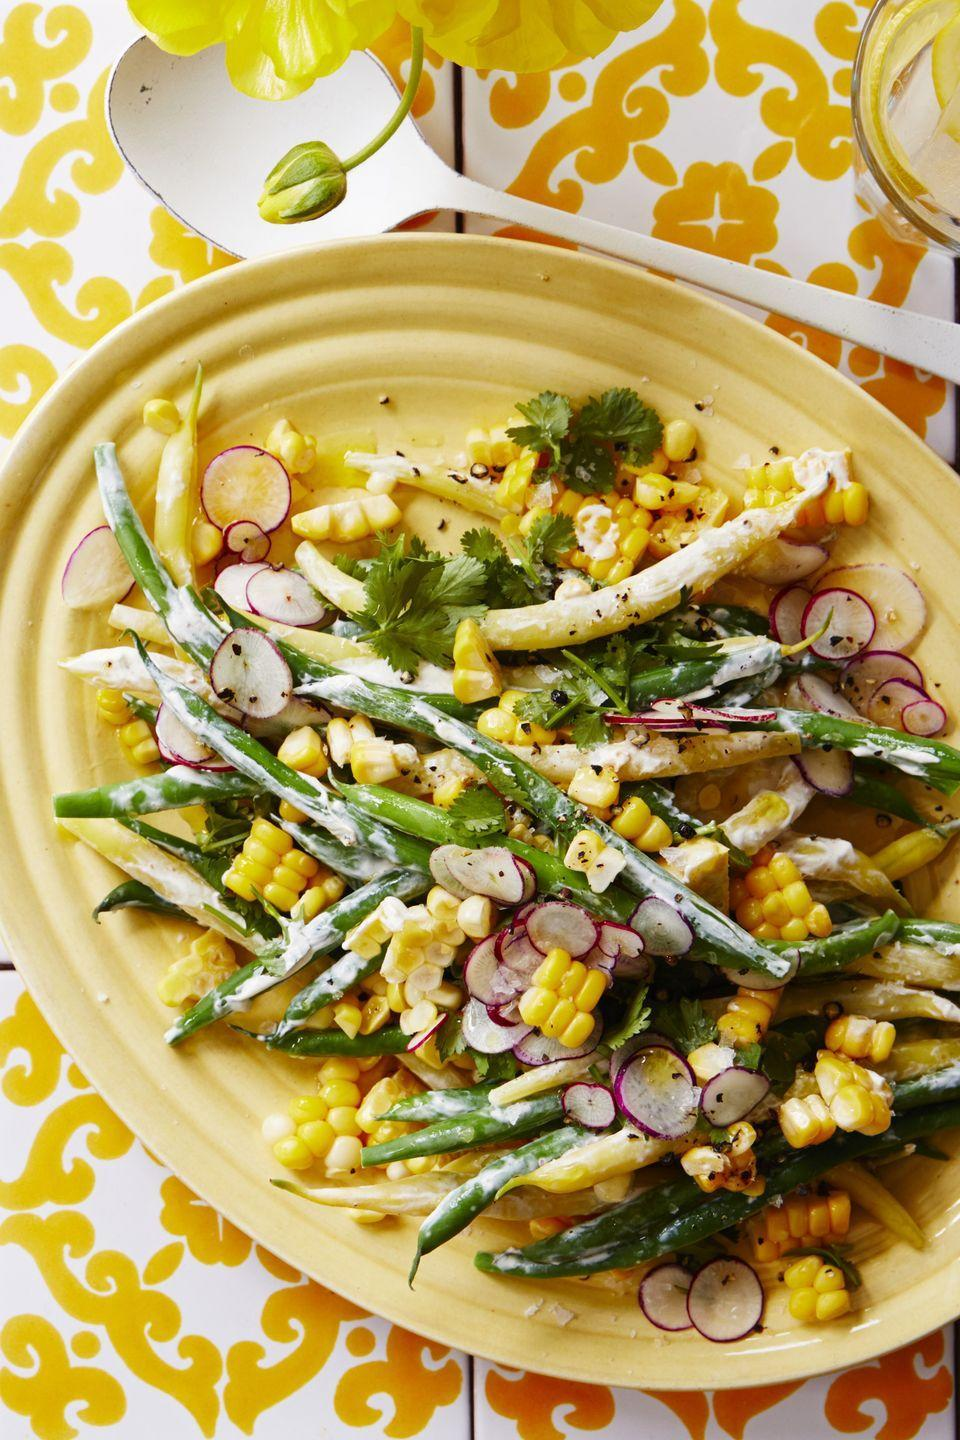 "<p>Make your own dressing for this bean and corn salad with just four ingredients.<br></p><p><em><a href=""https://www.womansday.com/food-recipes/food-drinks/a22064579/summer-bean-corn-and-radish-salad-recipe/"" rel=""nofollow noopener"" target=""_blank"" data-ylk=""slk:Get the recipe for Summer Bean, Corn, and Radish Salad."" class=""link rapid-noclick-resp"">Get the recipe for Summer Bean, Corn, and Radish Salad.</a></em></p>"